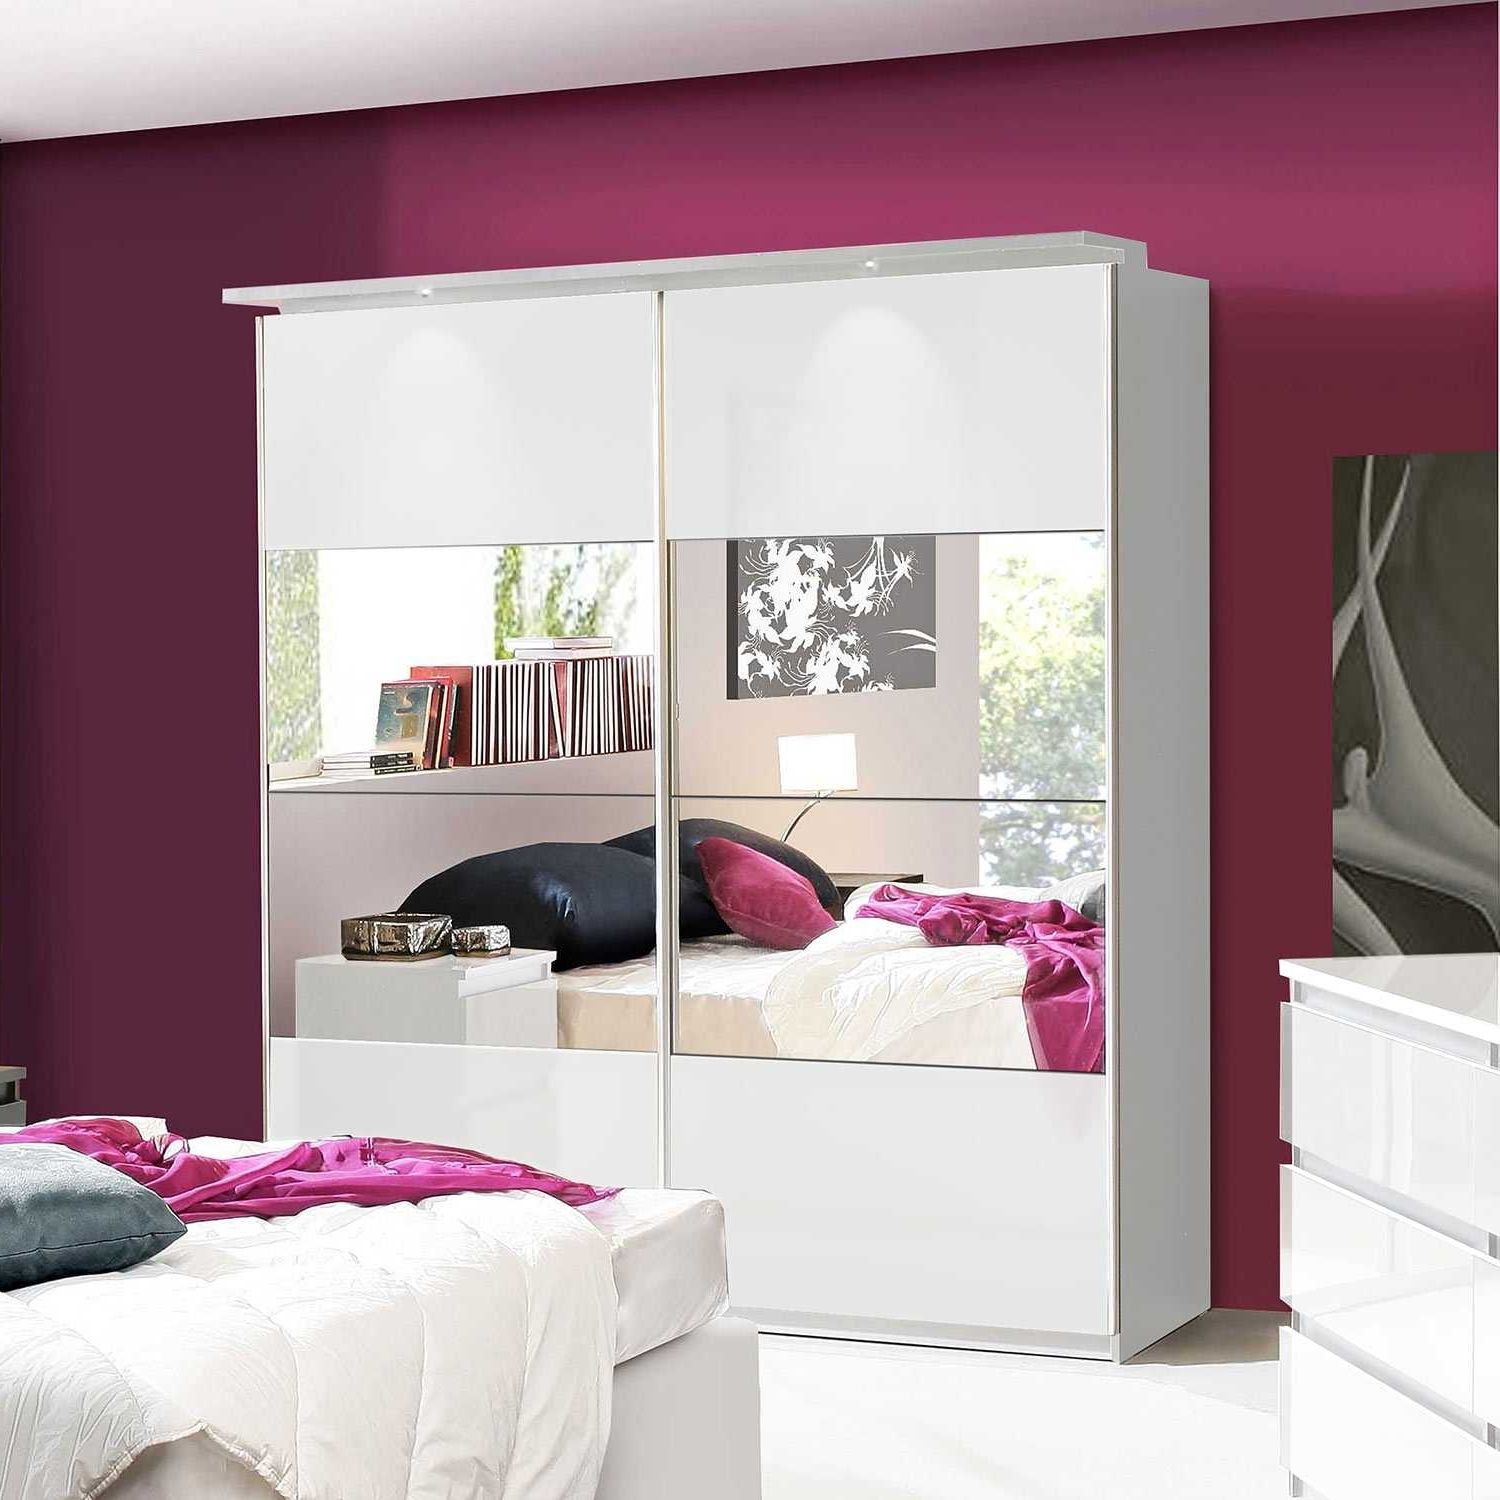 Lucia White Gloss Sliding Door Wardrobe Chls824E1C87 Regarding Famous High Gloss Sliding Wardrobes (View 10 of 15)